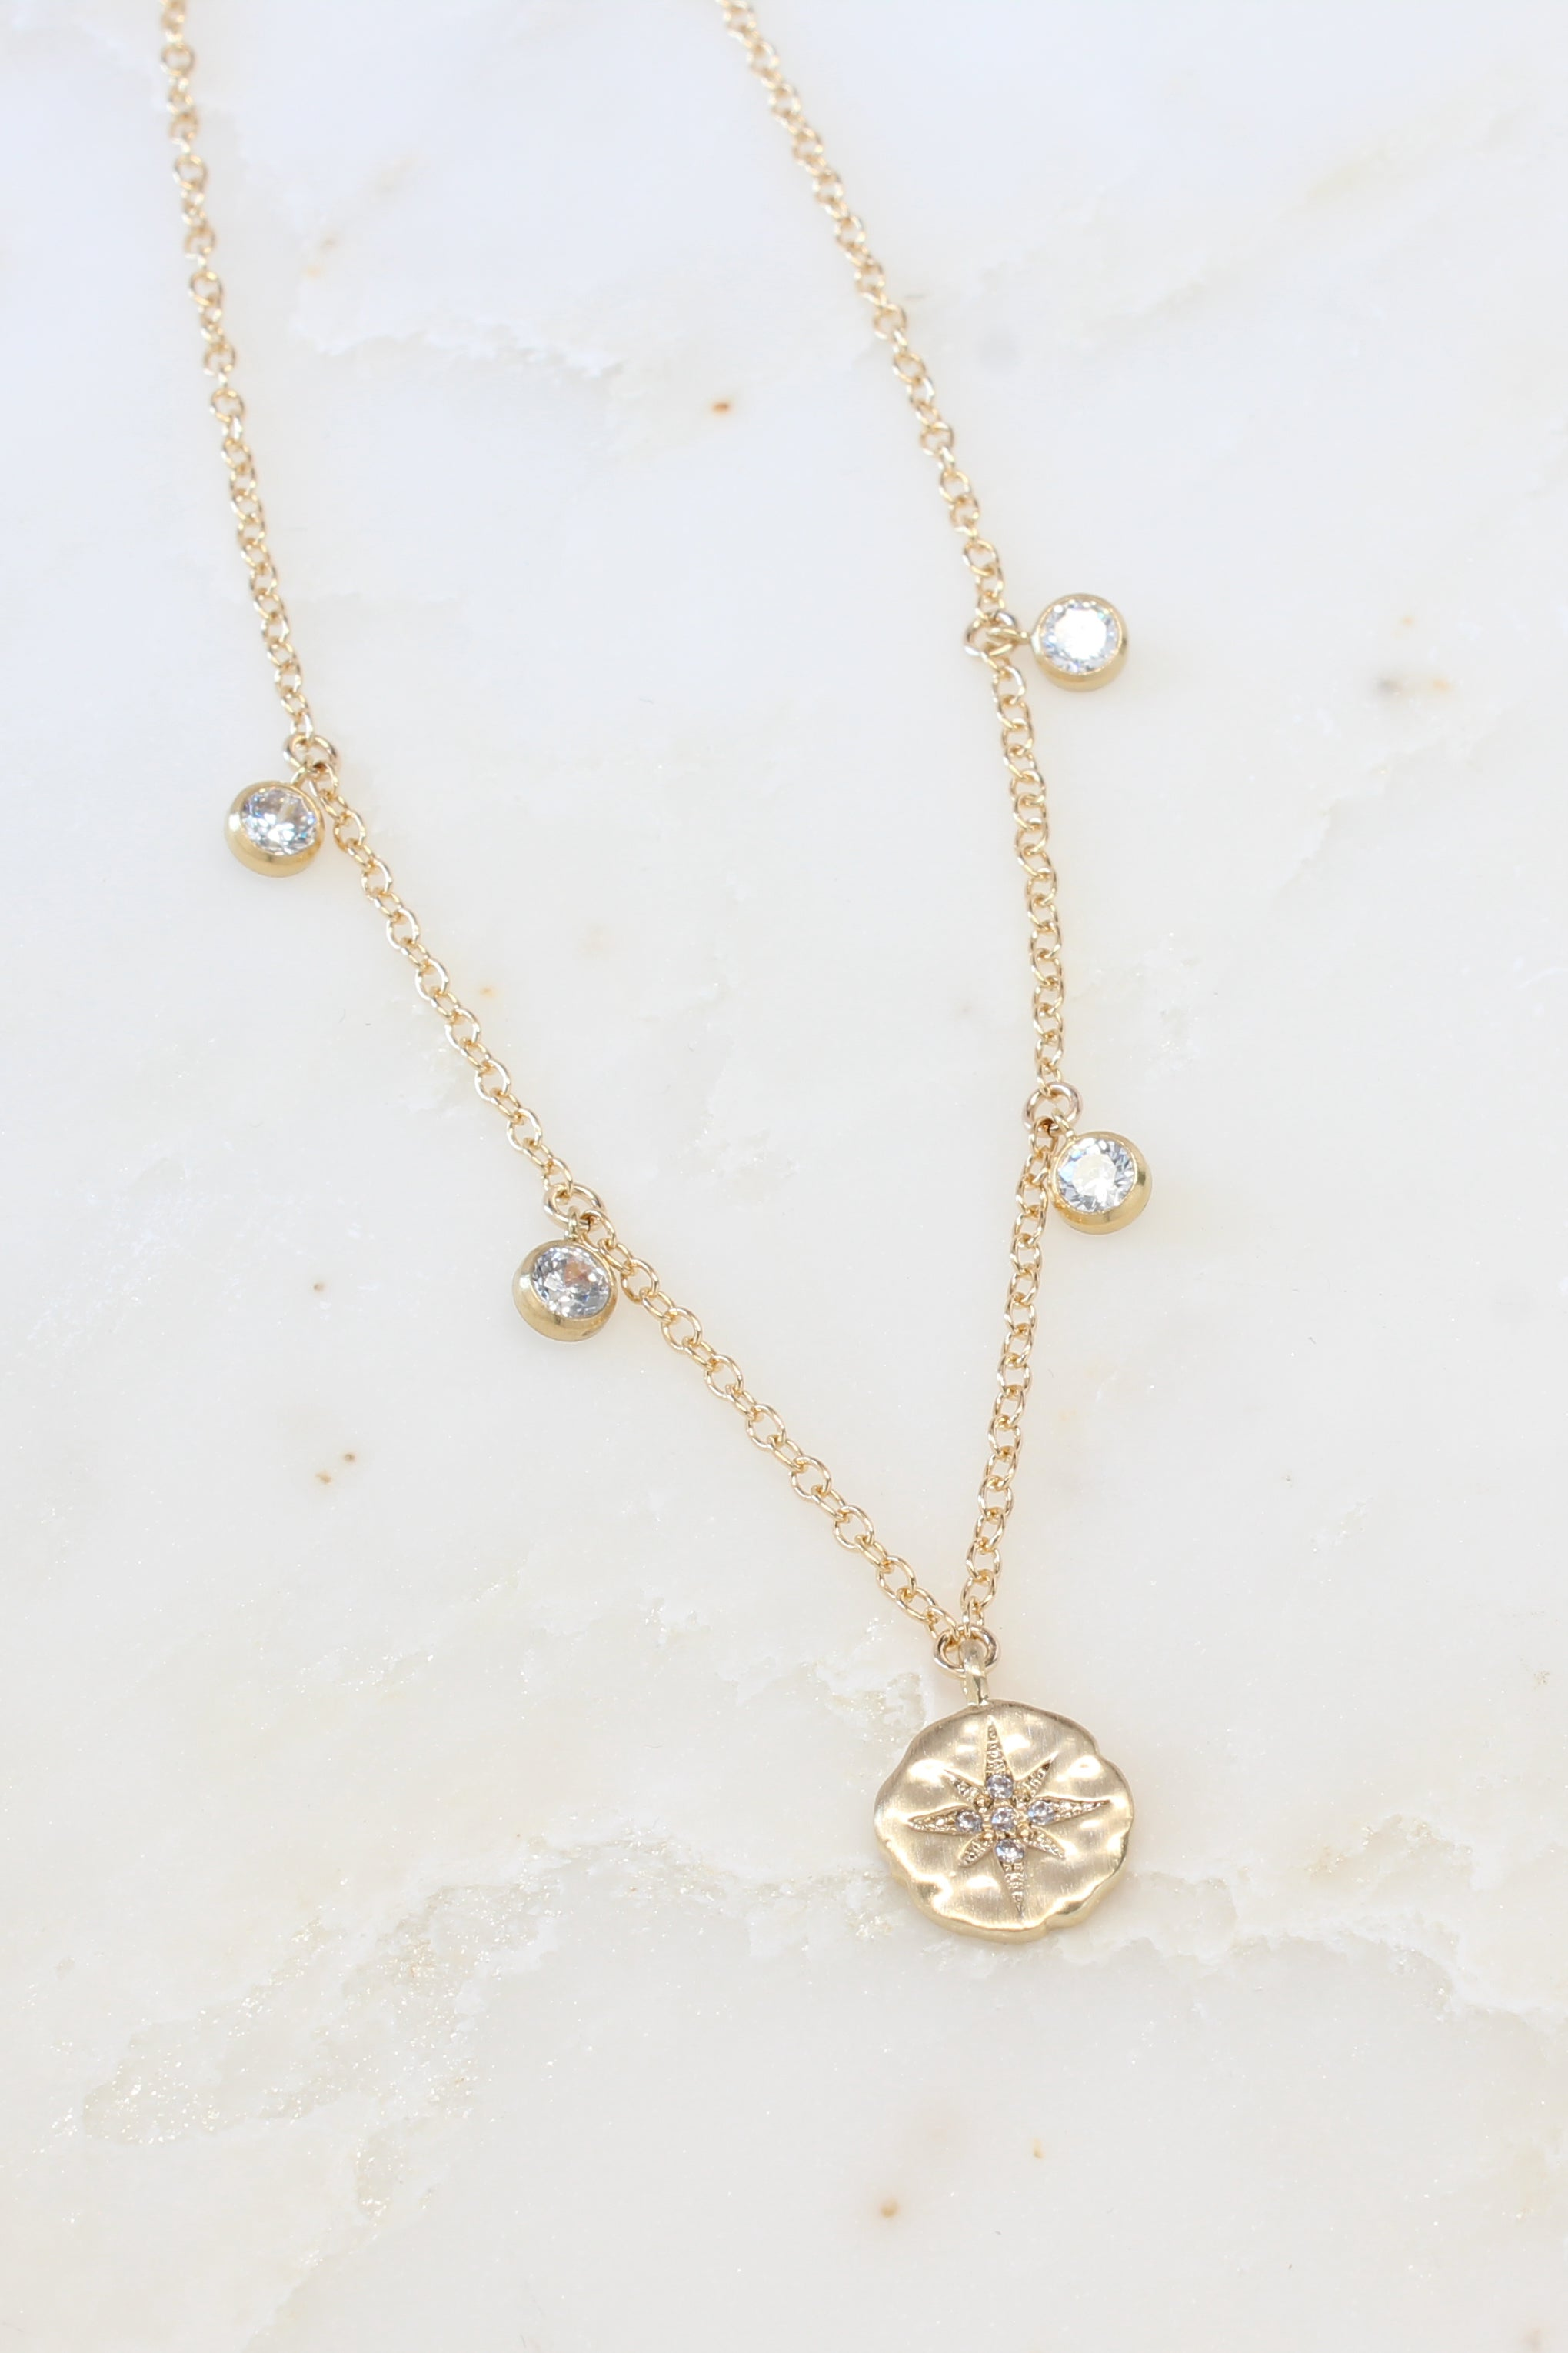 Amara Shaker Necklace Gold Brooke Landon Jewelry